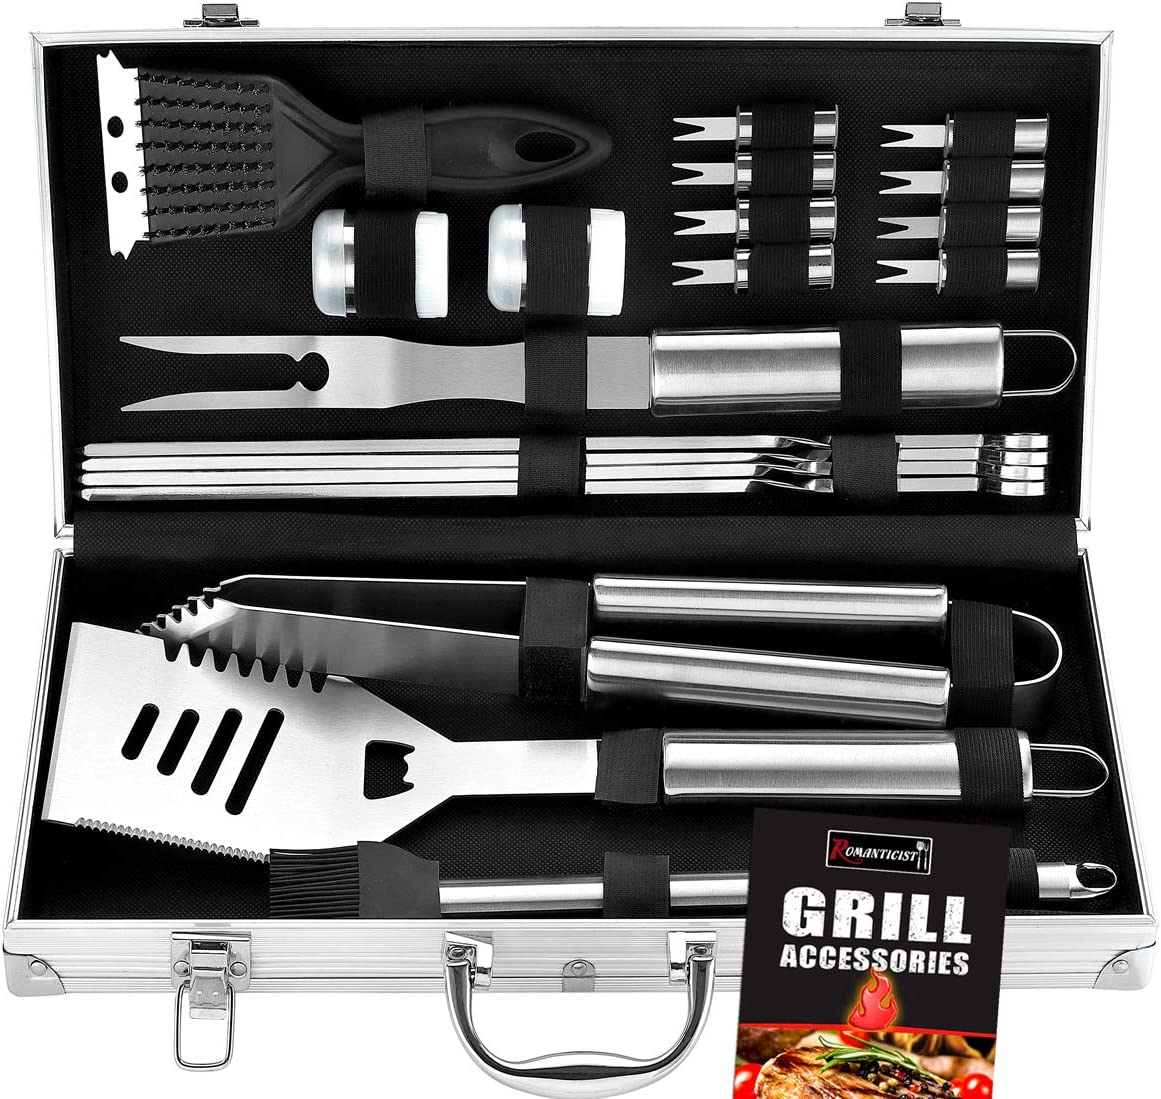 Best Grilling Accessories for Beginners: Romanticist 20pc Heavy Duty BBQ Grill Tool Set